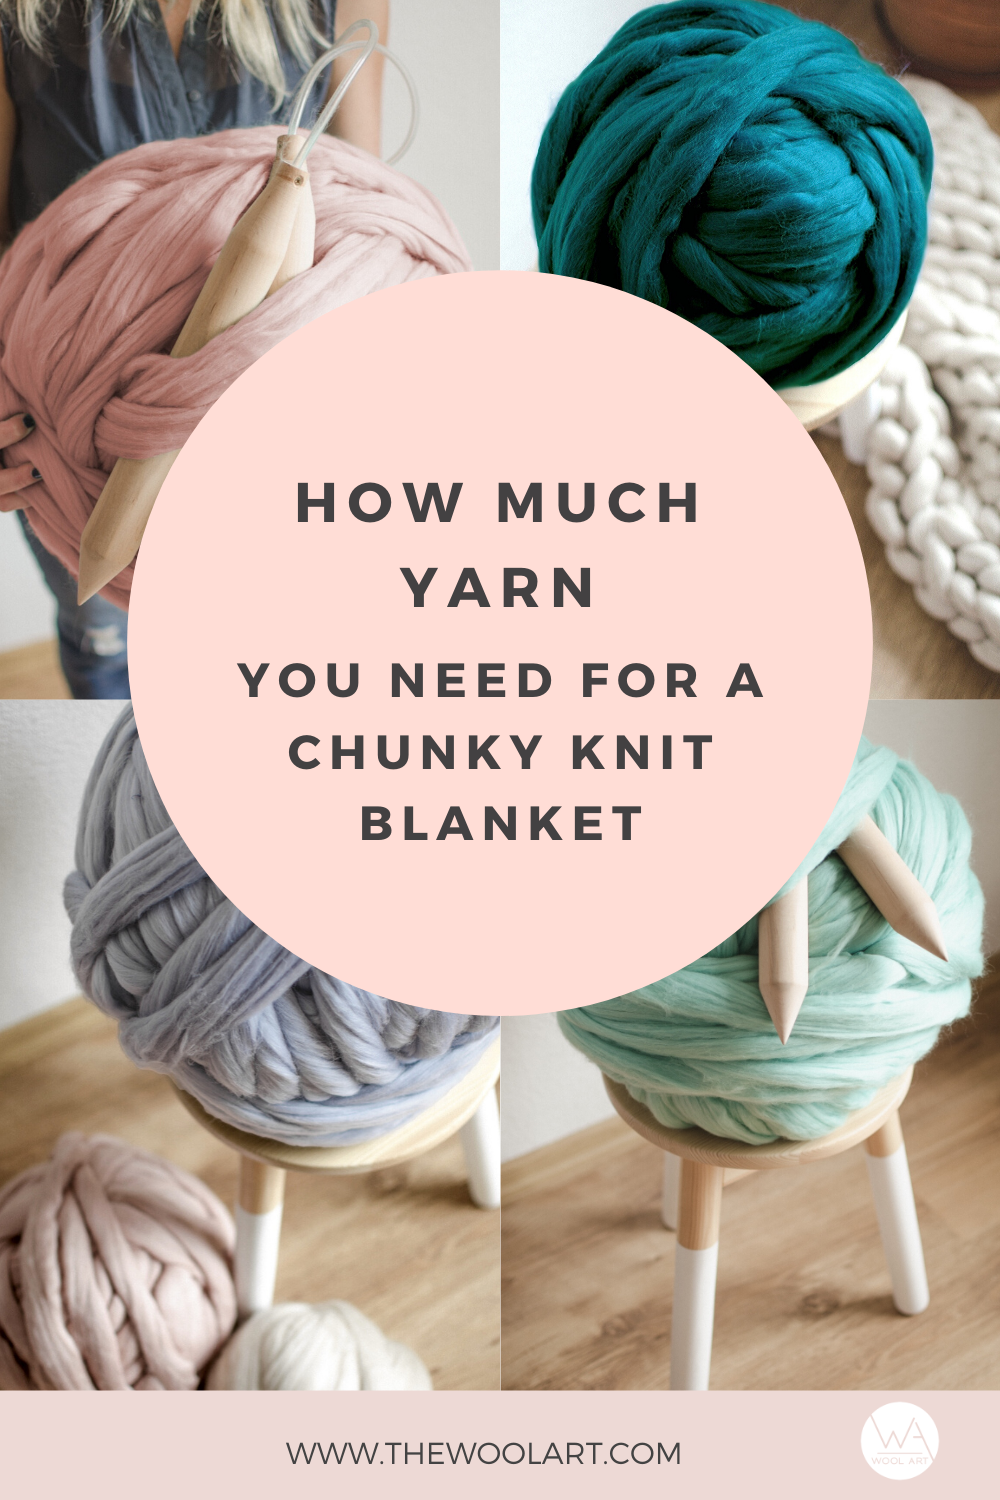 Pin on Knitting Tips and Tricks